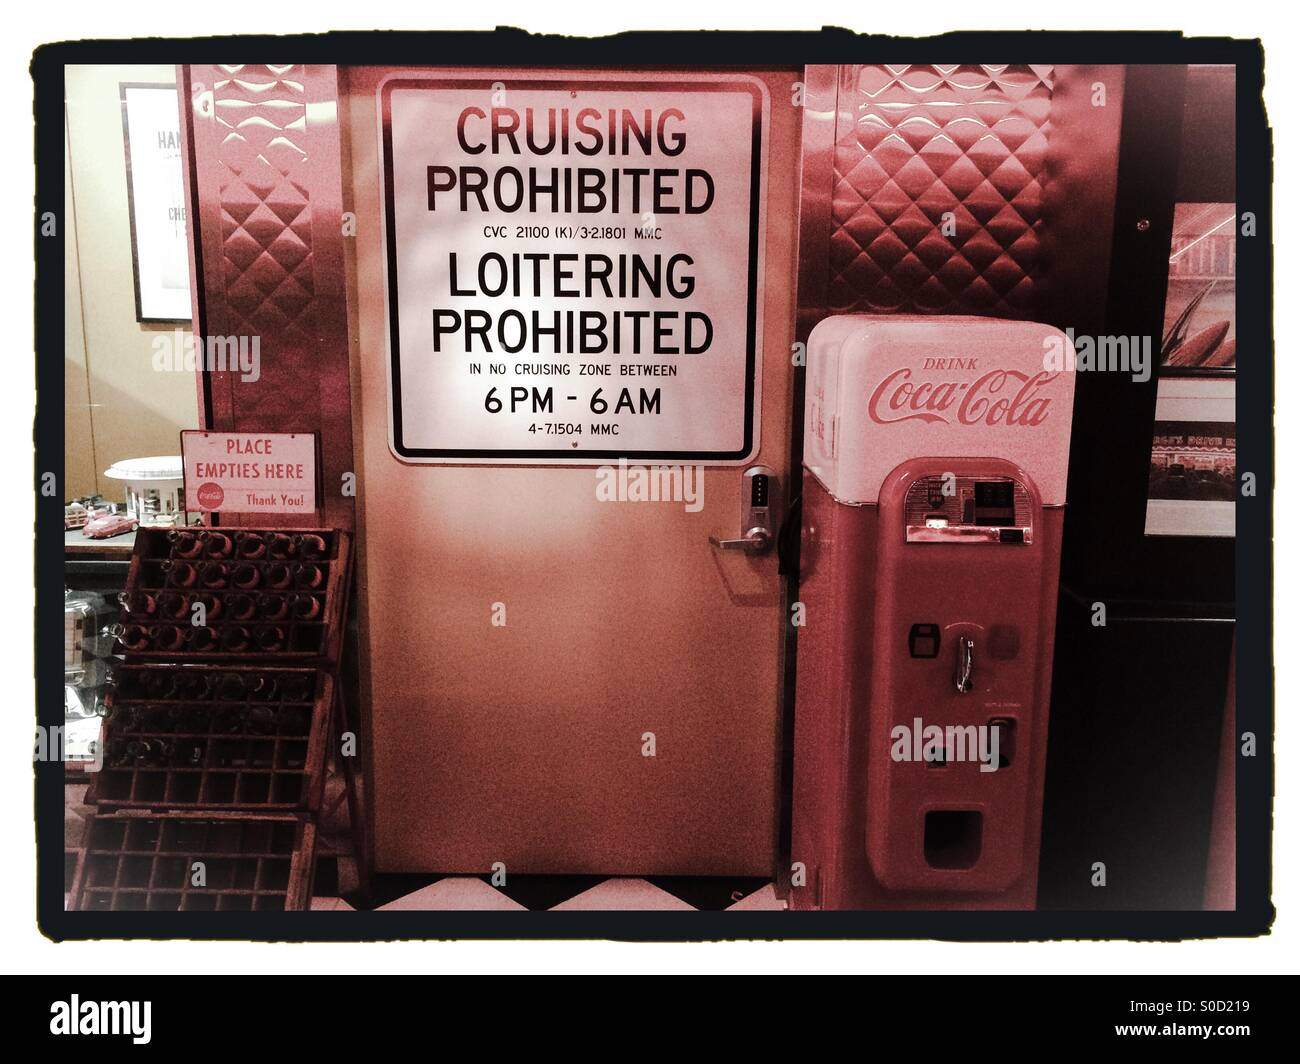 A Cruising Prohibited traffic sign in the American Graffiti exhibit at the McHenry Museum. Modesto, California, - Stock Image